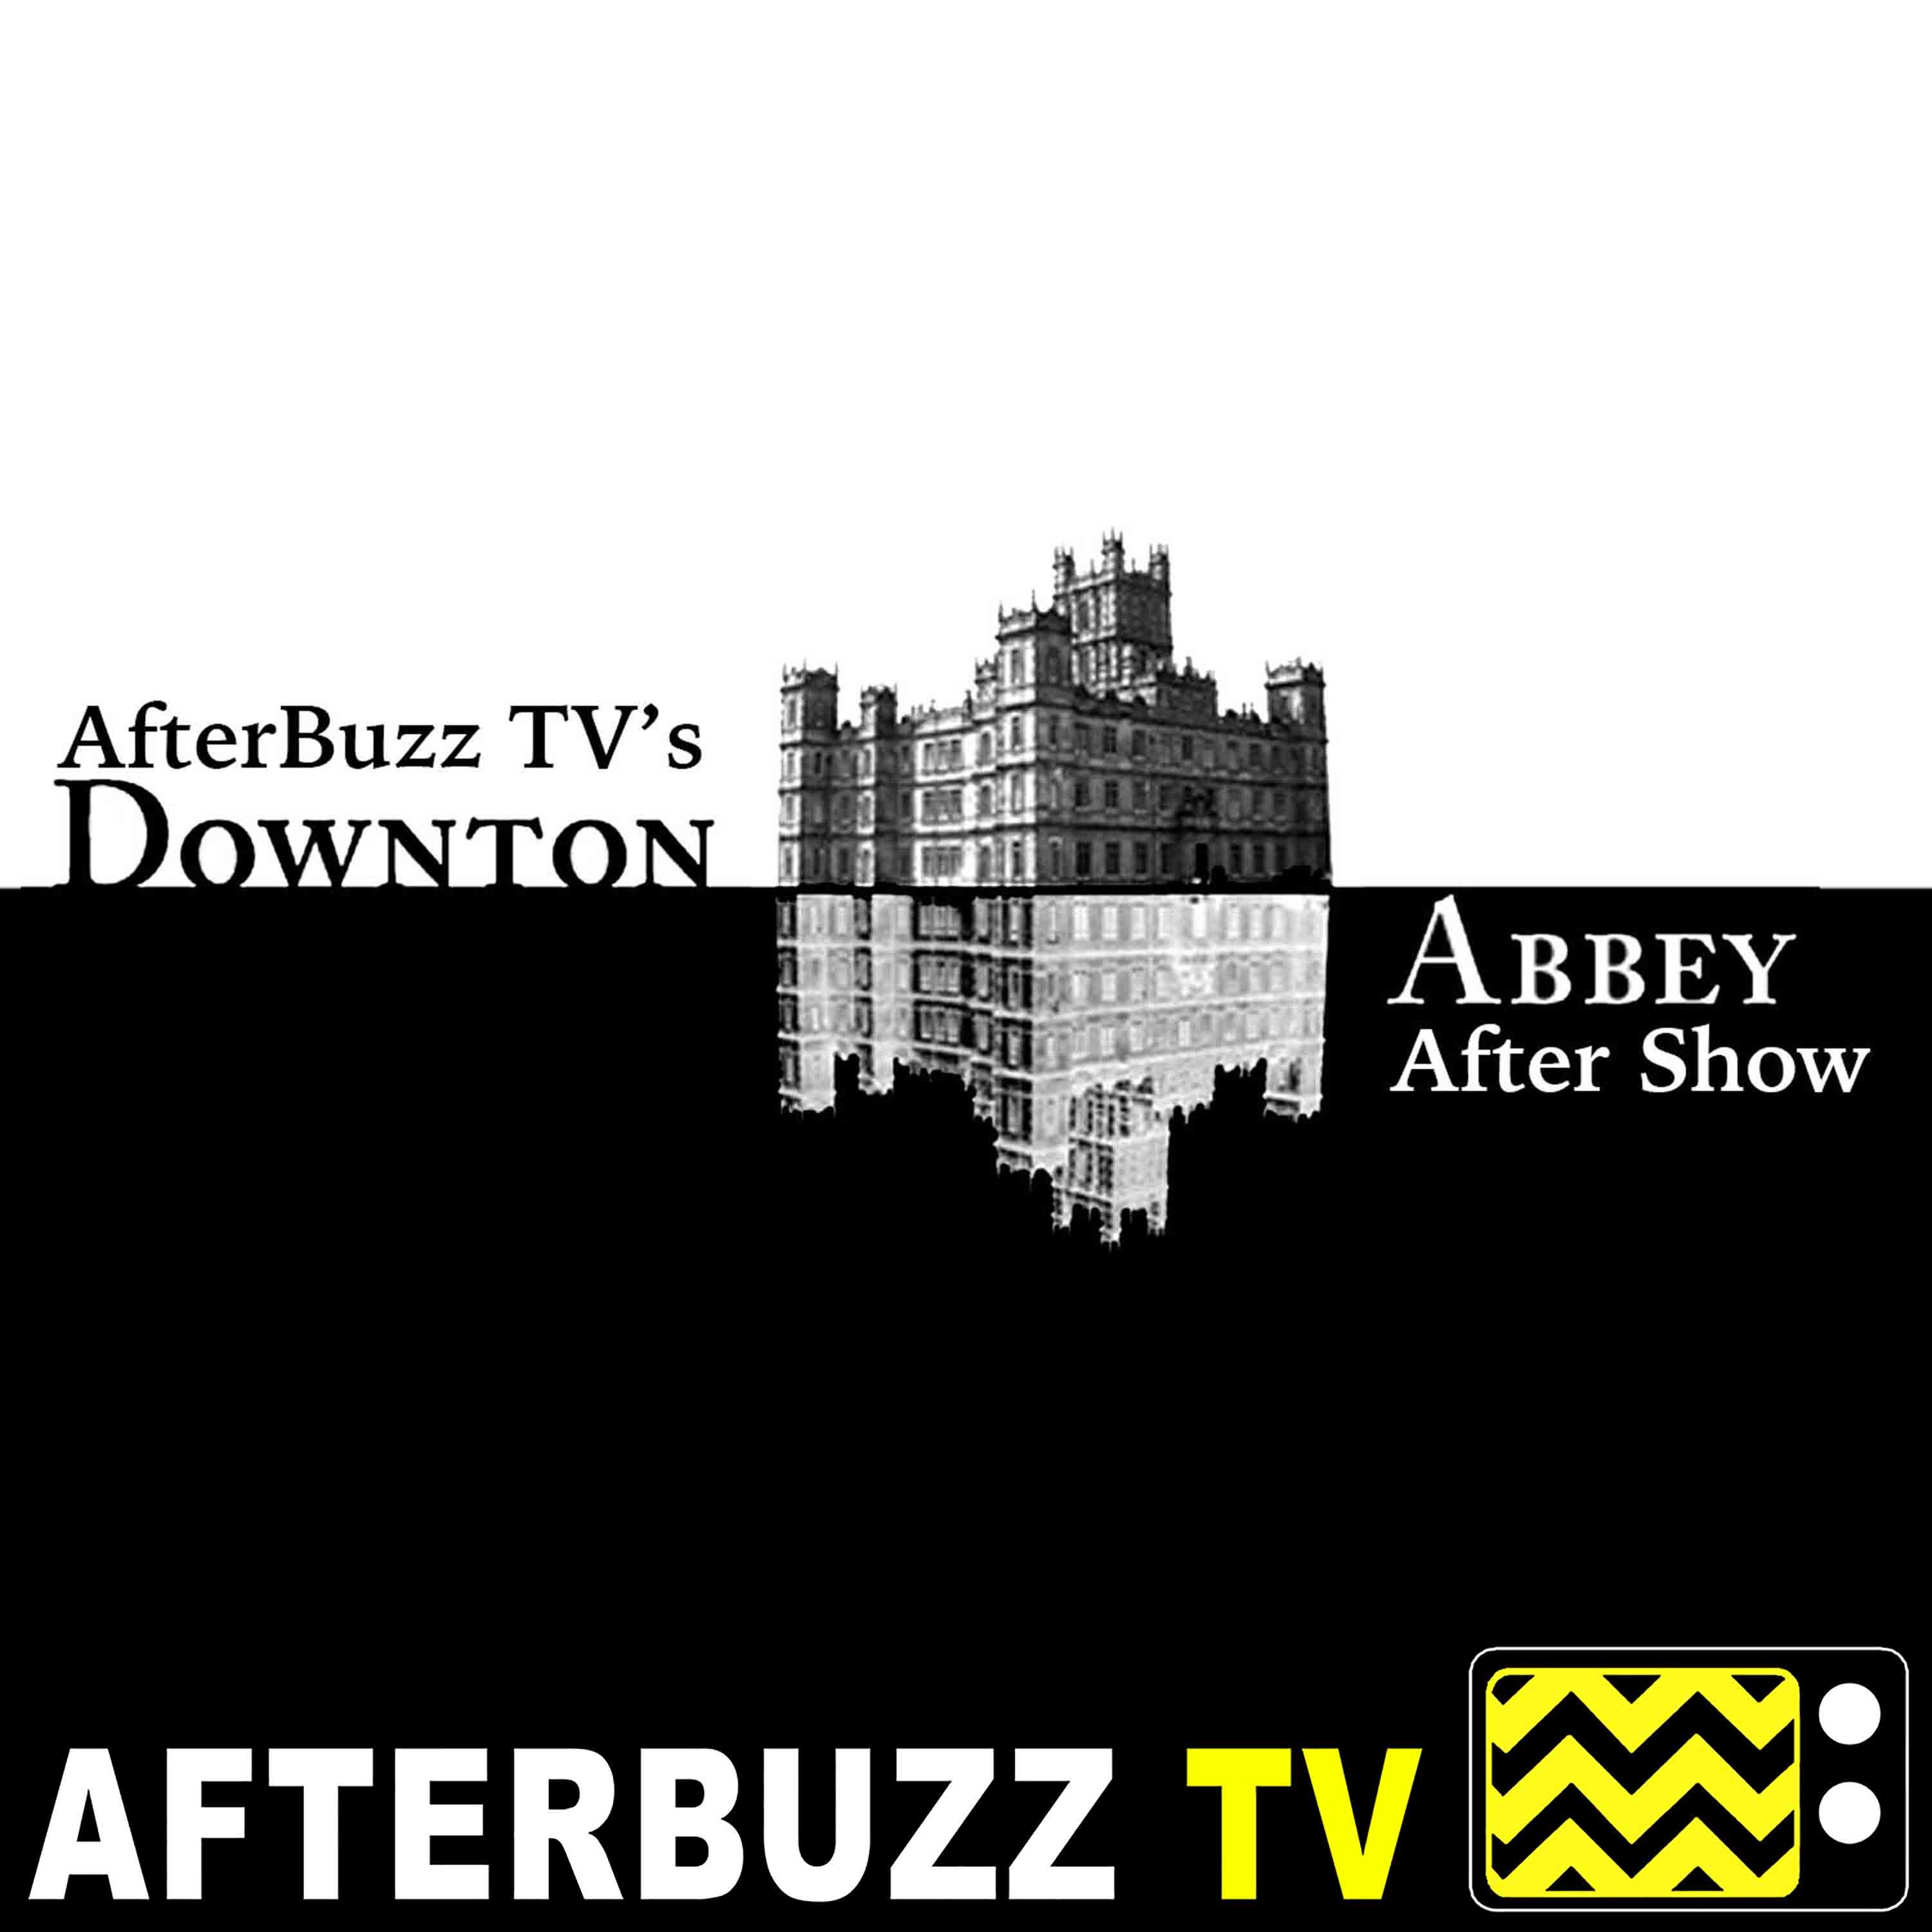 Downton Abbey UK S:6 | Episode 6 | AfterBuzz TV AfterShow